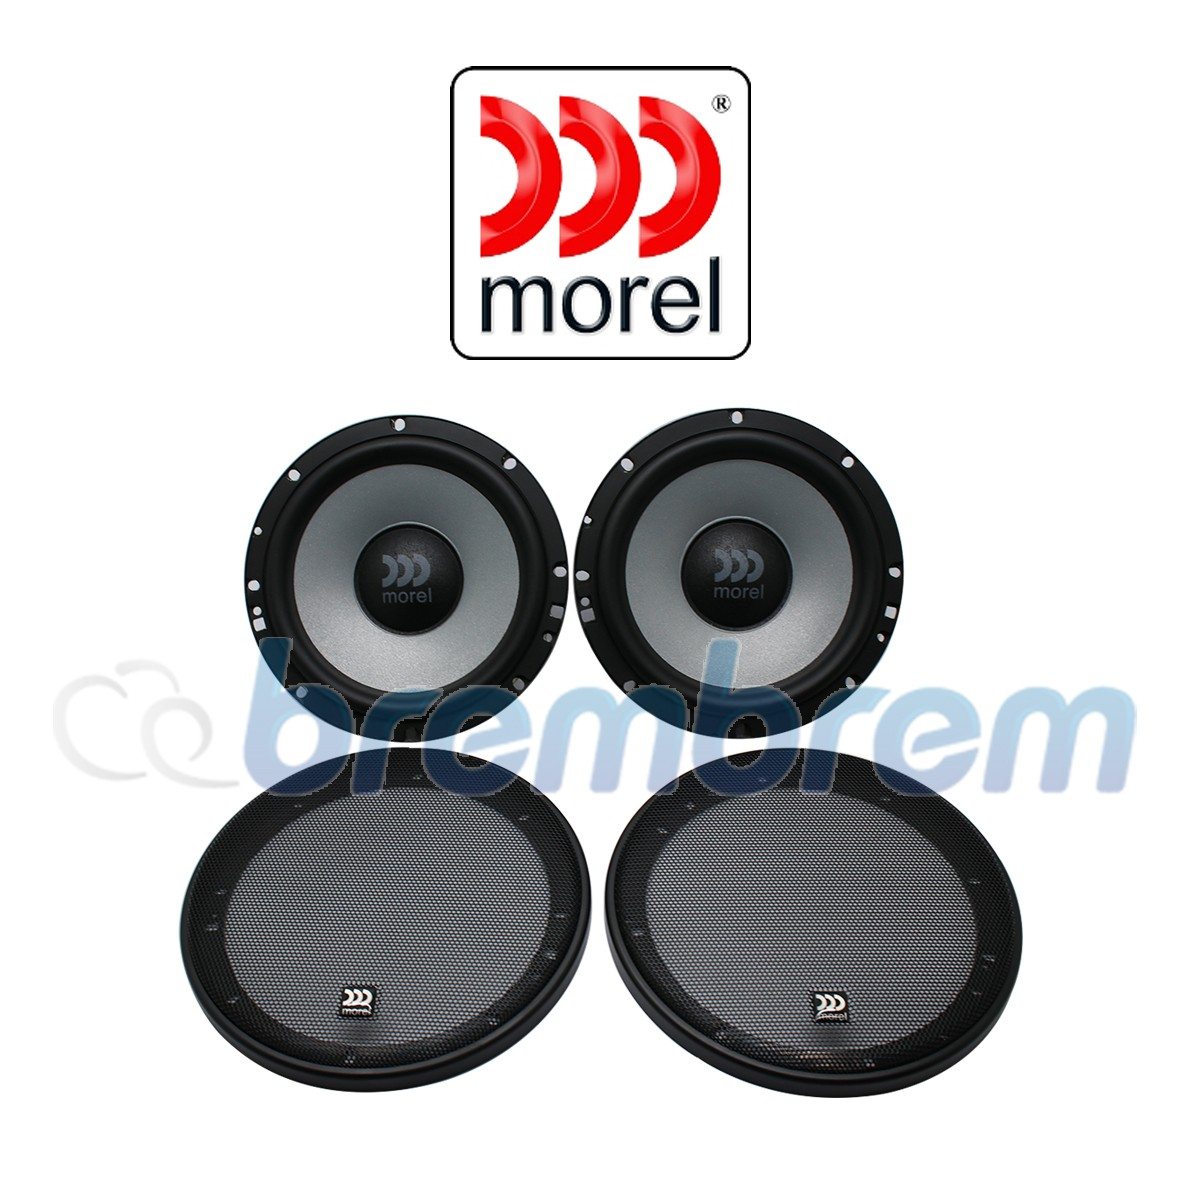 MOREL MAXIMO ULTRA 602 - SPEAKER 2 WAY